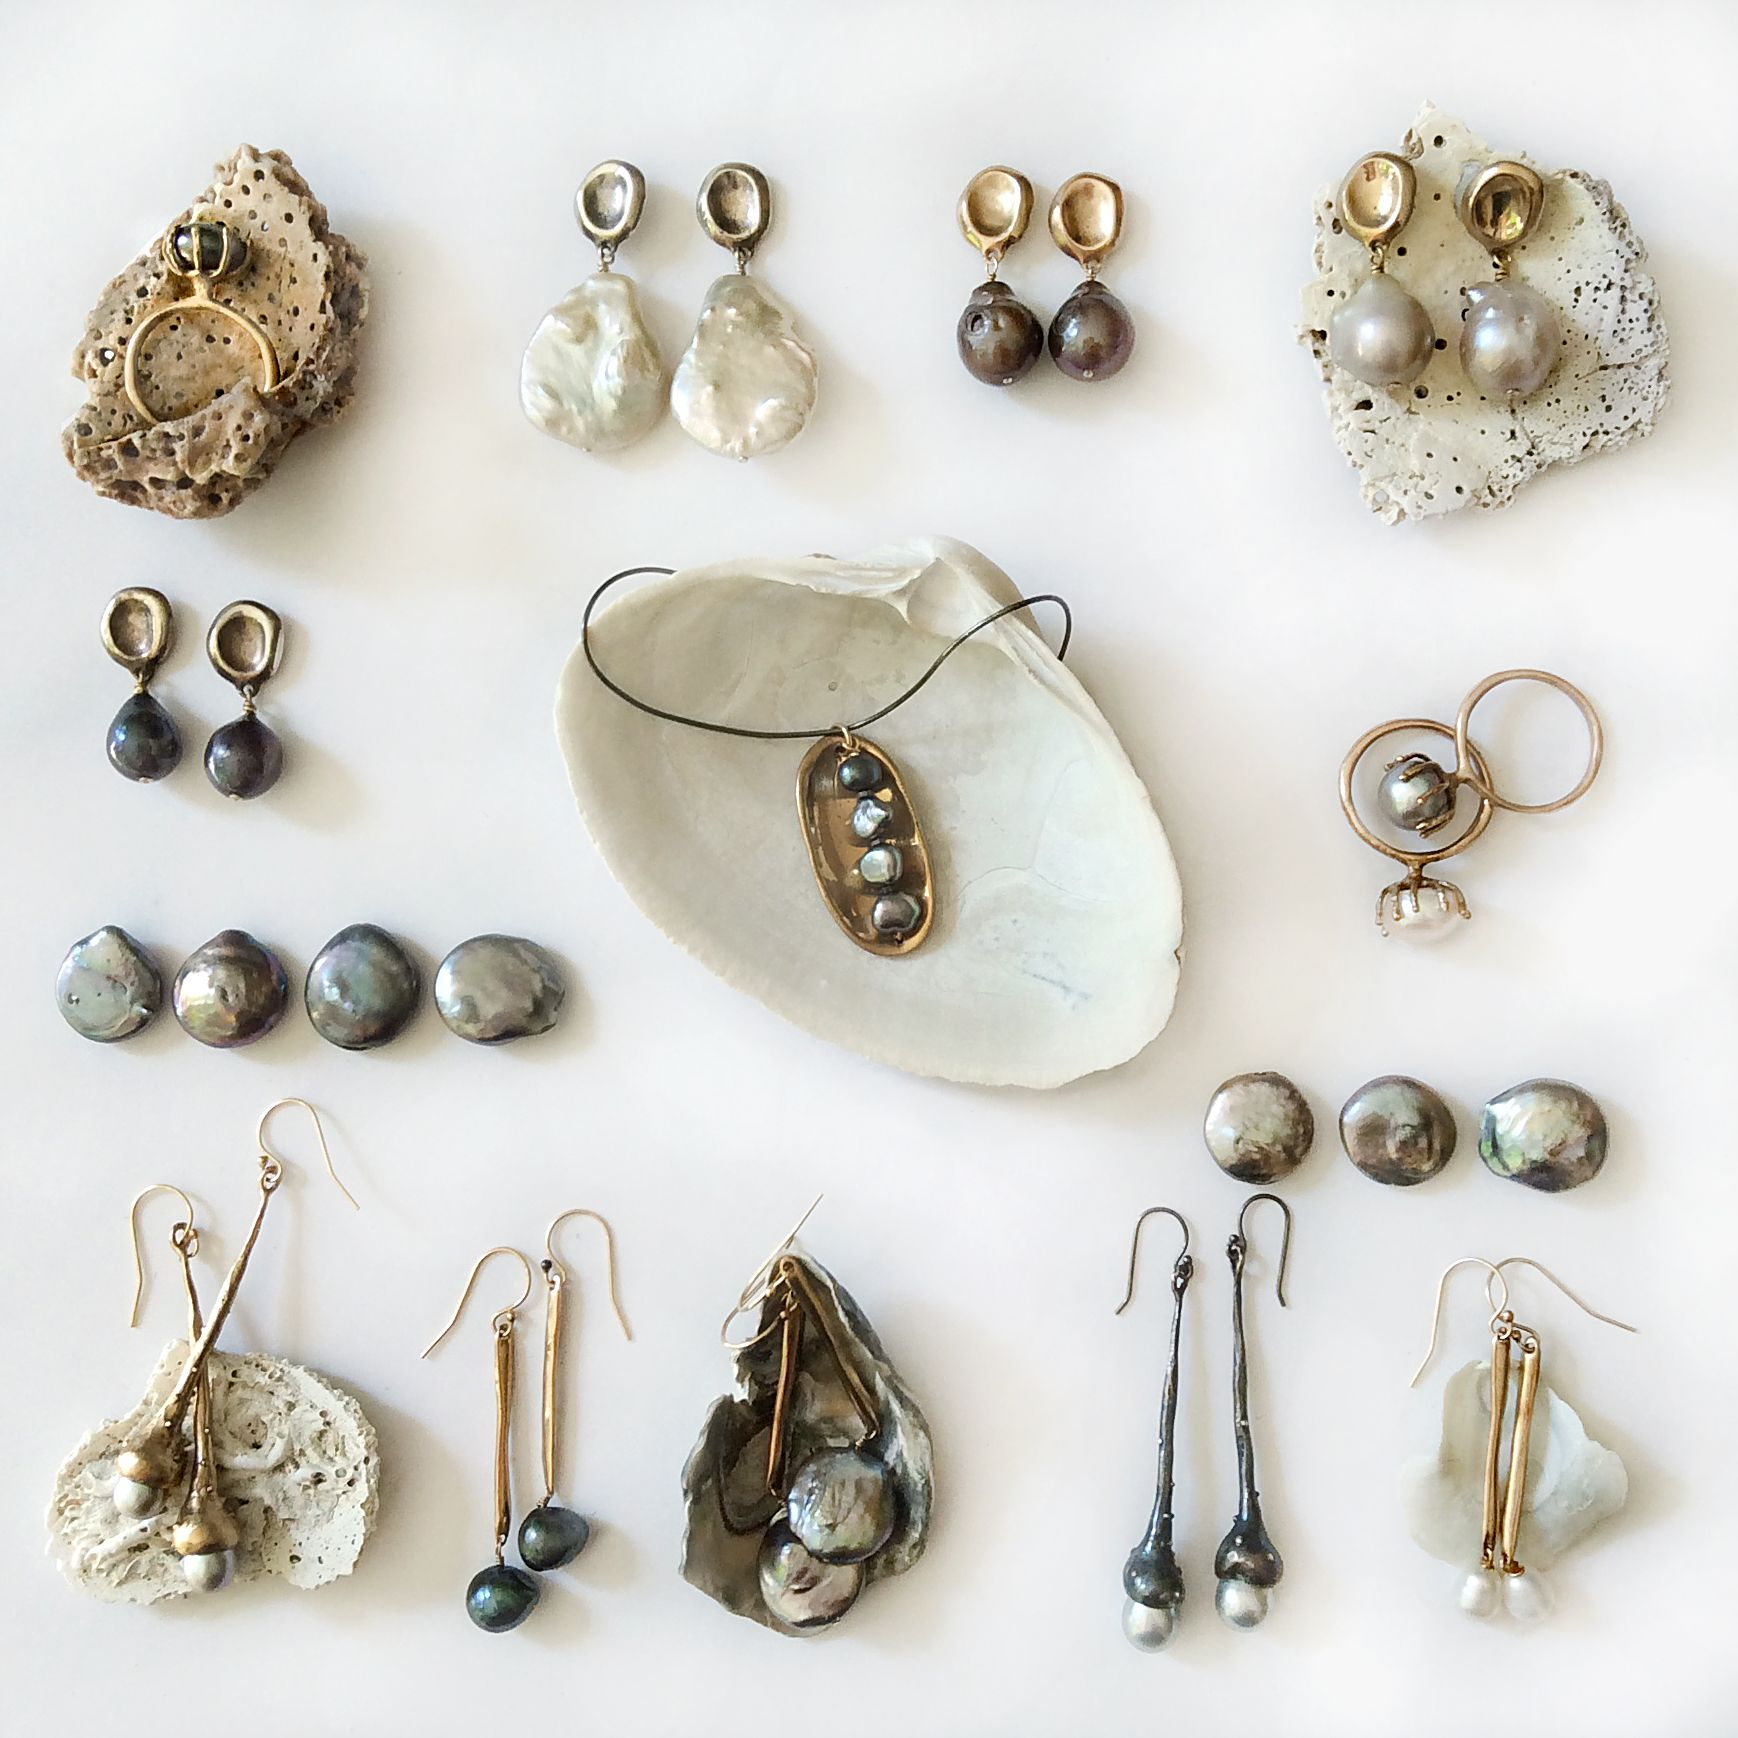 Different Pieces From My Jewelry Collection Of Earrings